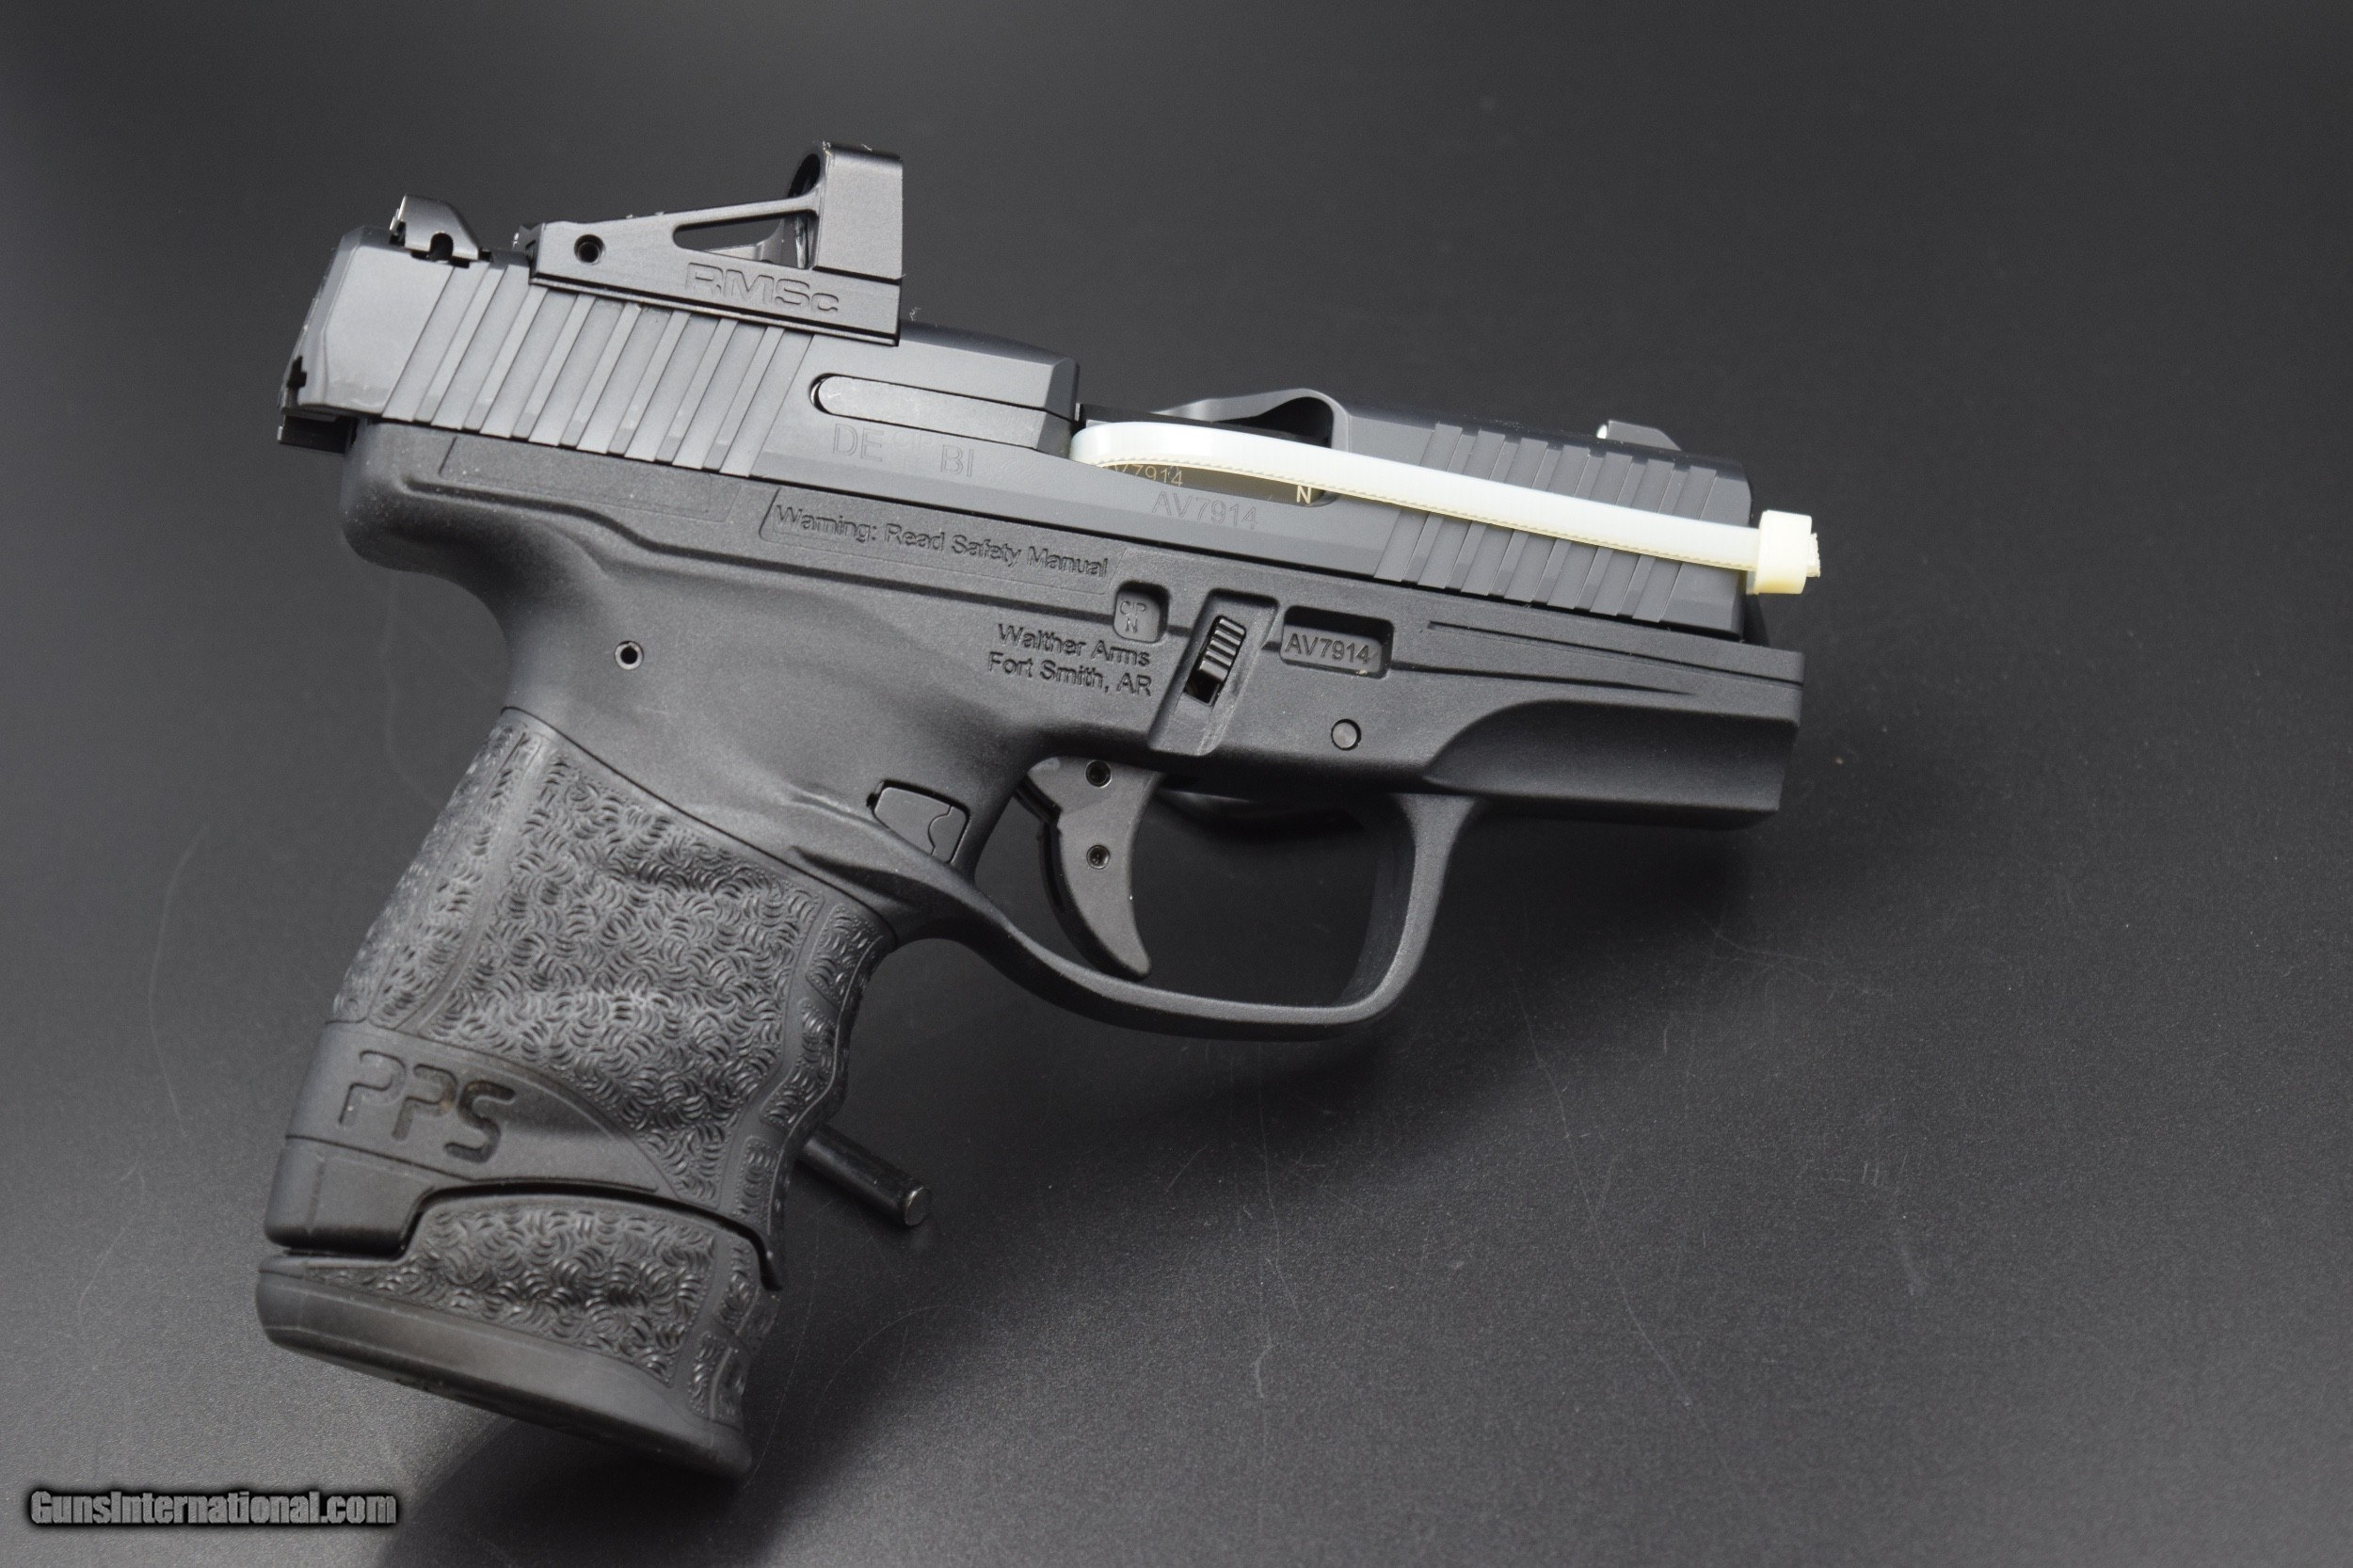 WALTHER PPS M2 RMSC 9 MM PISTOL WITH FACTORY DOT SIGHT